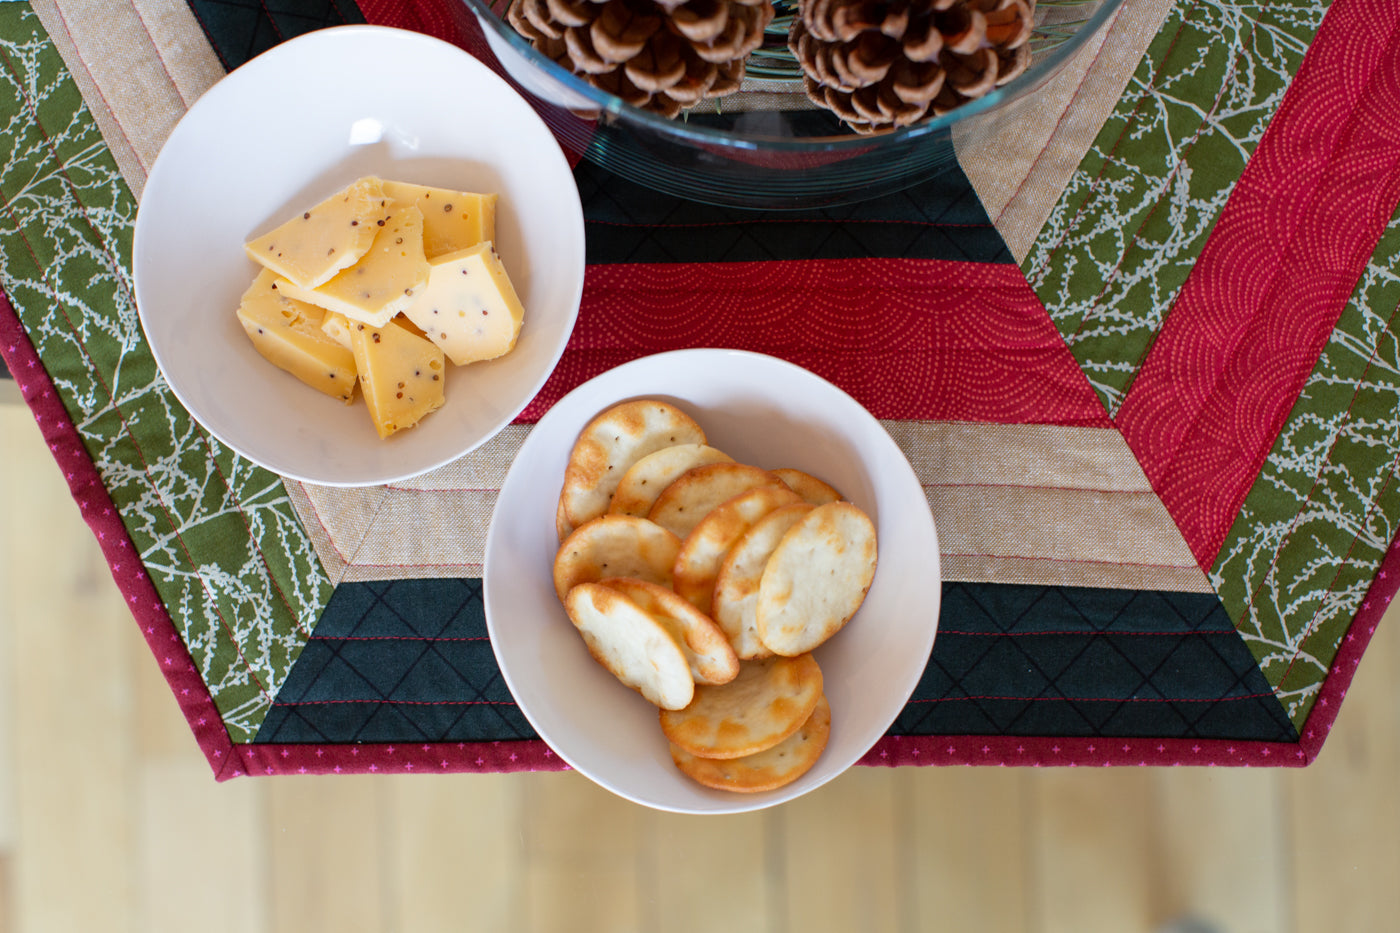 Photograph of looking at half of the hexagon centerpiece in Christmas green, red, a tan and black.  Two white small bowls are on the centerpiece one filled with sliced of mustard cheese and the other with white round crackers.